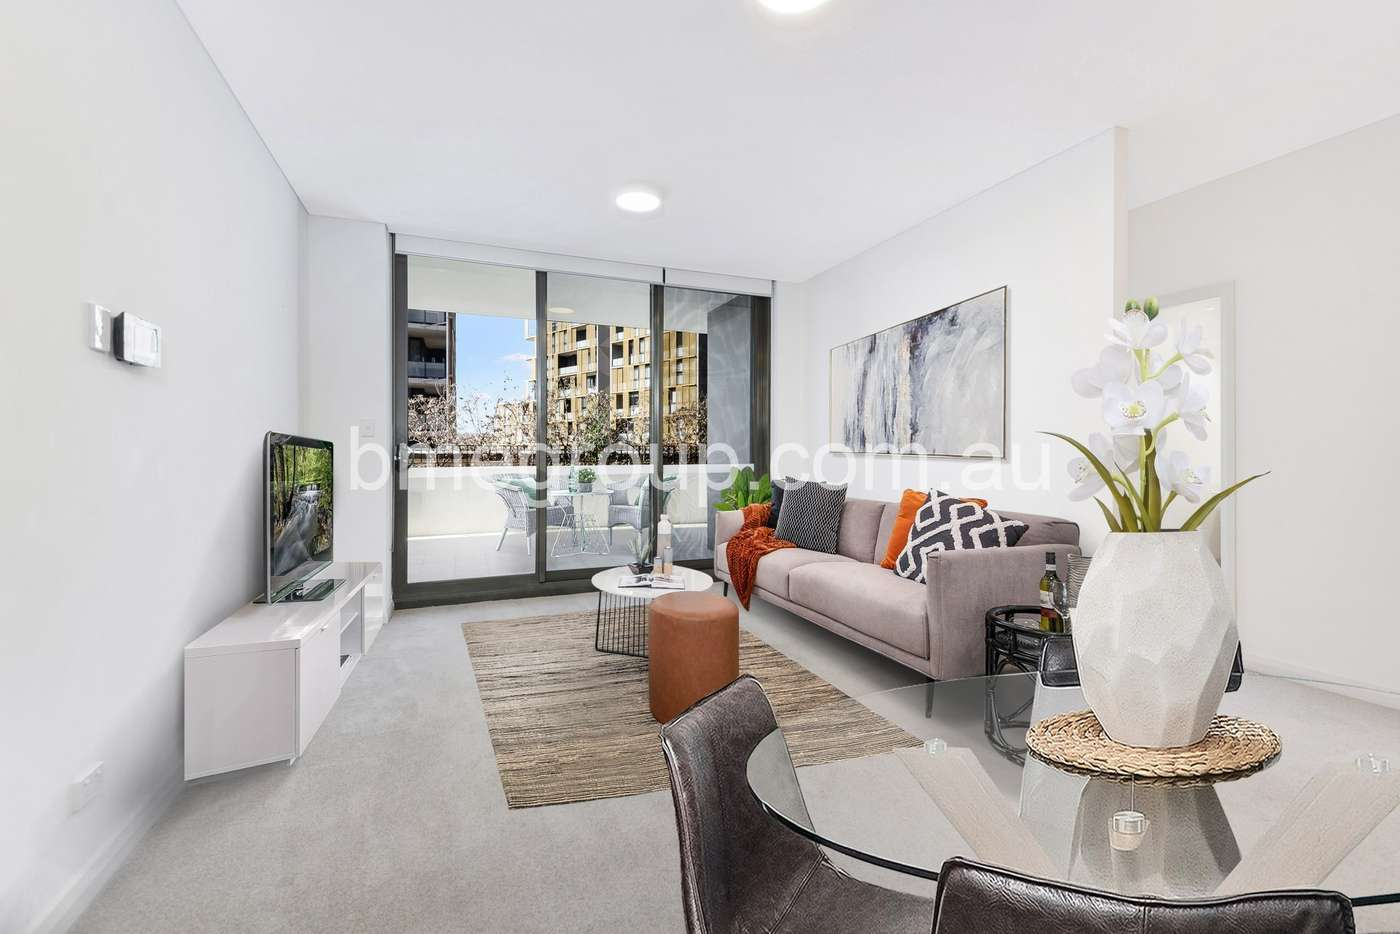 Main view of Homely apartment listing, Unit 402/57 Hill Rd, Wentworth Point NSW 2127